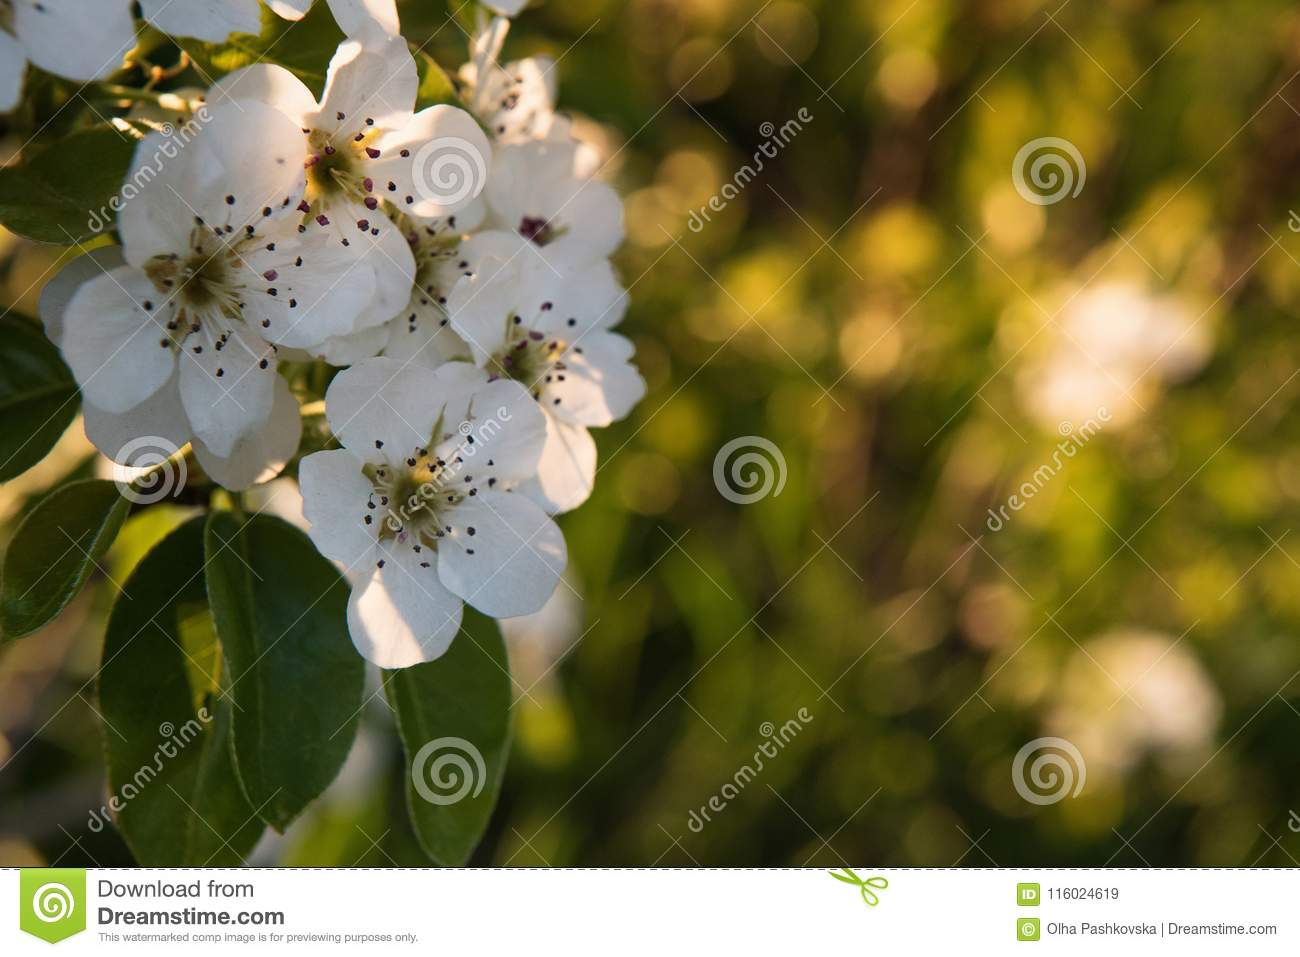 Blooming fruit tree branch unfocused background stock image spring greeting card with blooming branch of pear tree in warm sunset sunshine selective focus background bokeh space for text m4hsunfo